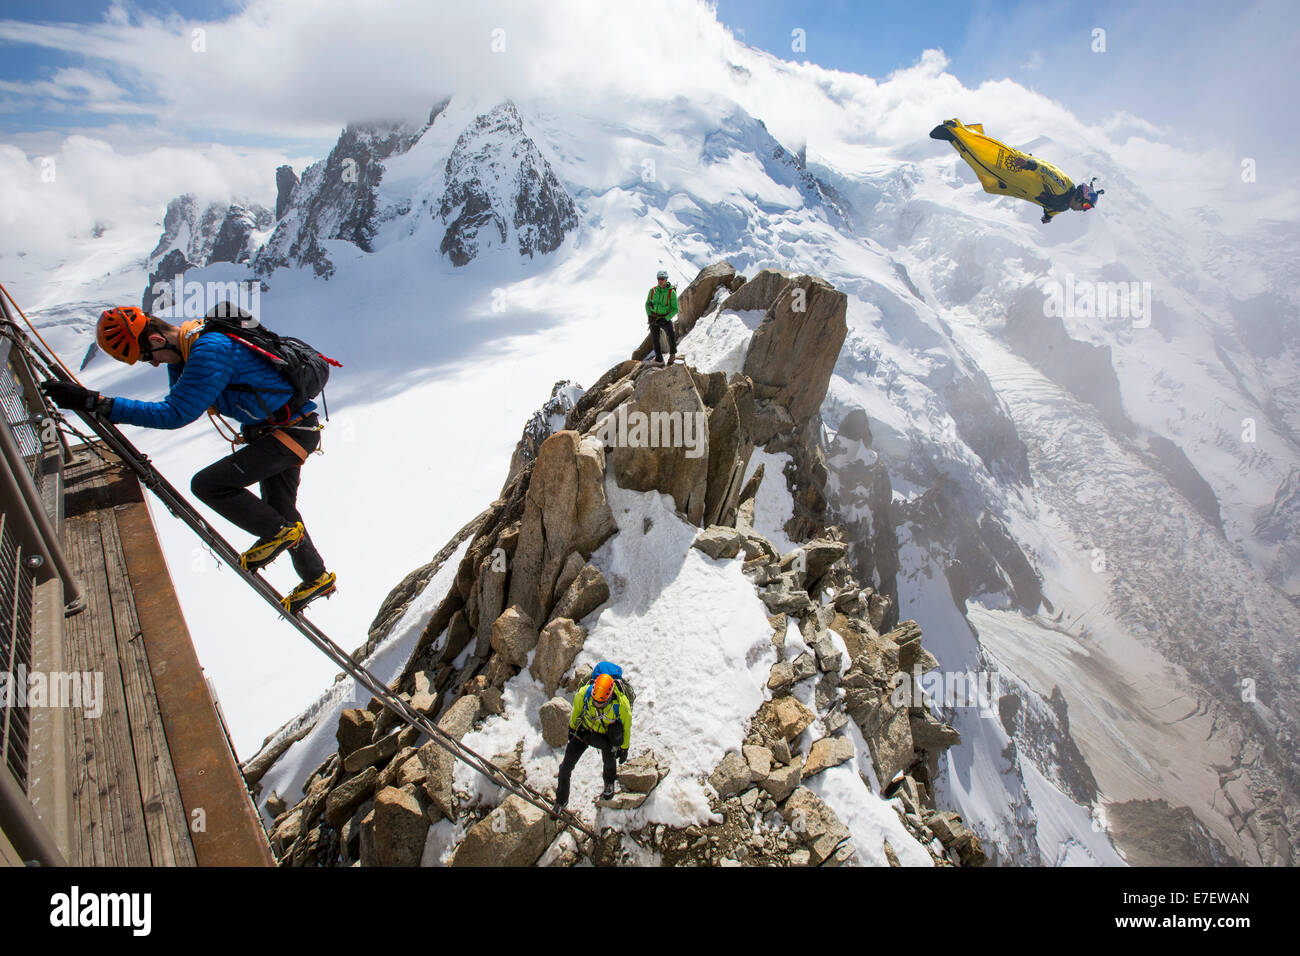 Mont Blanc from the Aiguille Du Midi above Chamonix, France, with climbers on the Cosmiques Arete, climbing the Stock Photo